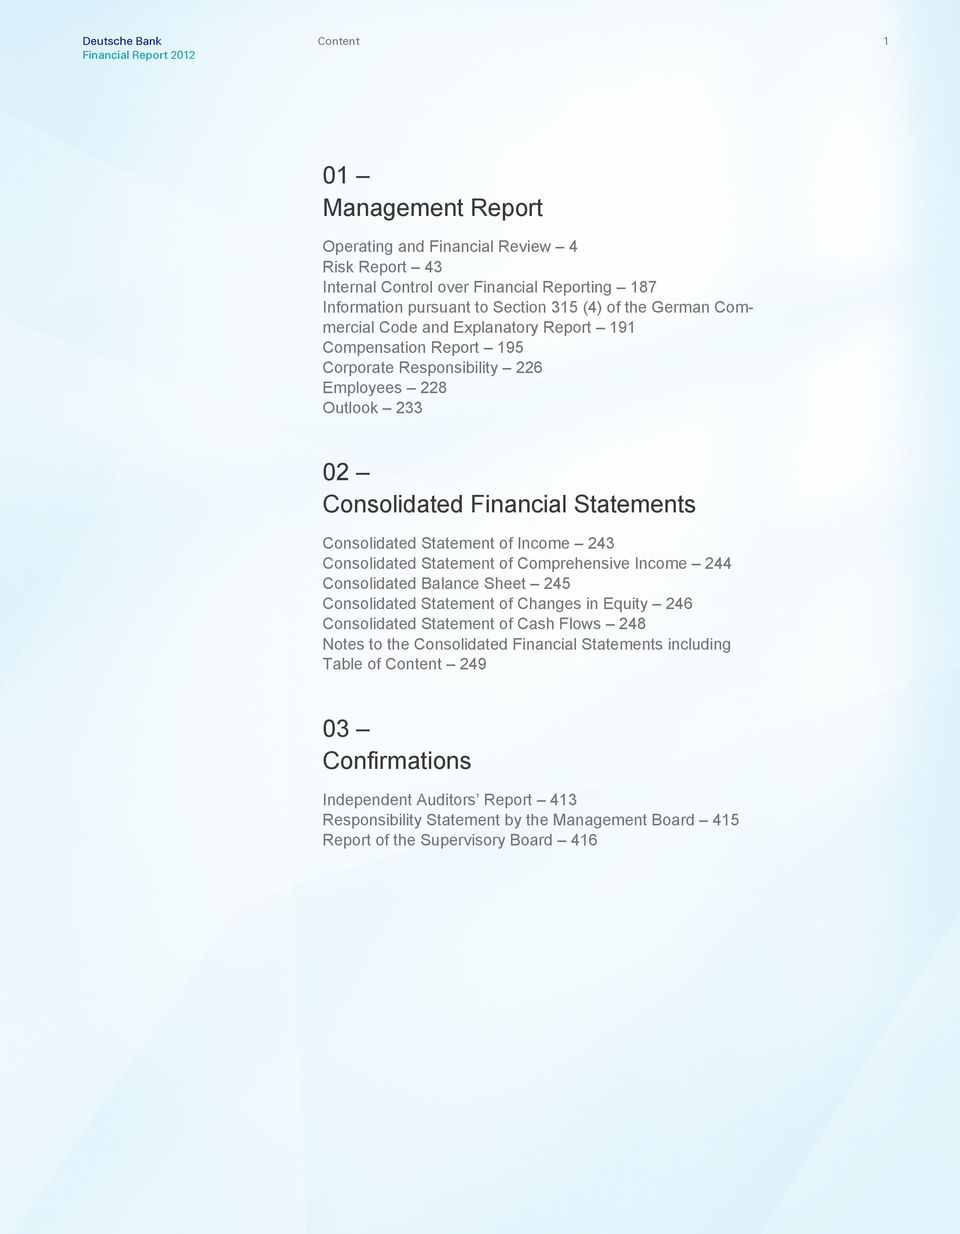 Financial Statements Consolidated Statement of Income 243 Consolidated Statement of Comprehensive Income 244 Consolidated Balance Sheet 245 Consolidated Statement of Changes in Equity 246